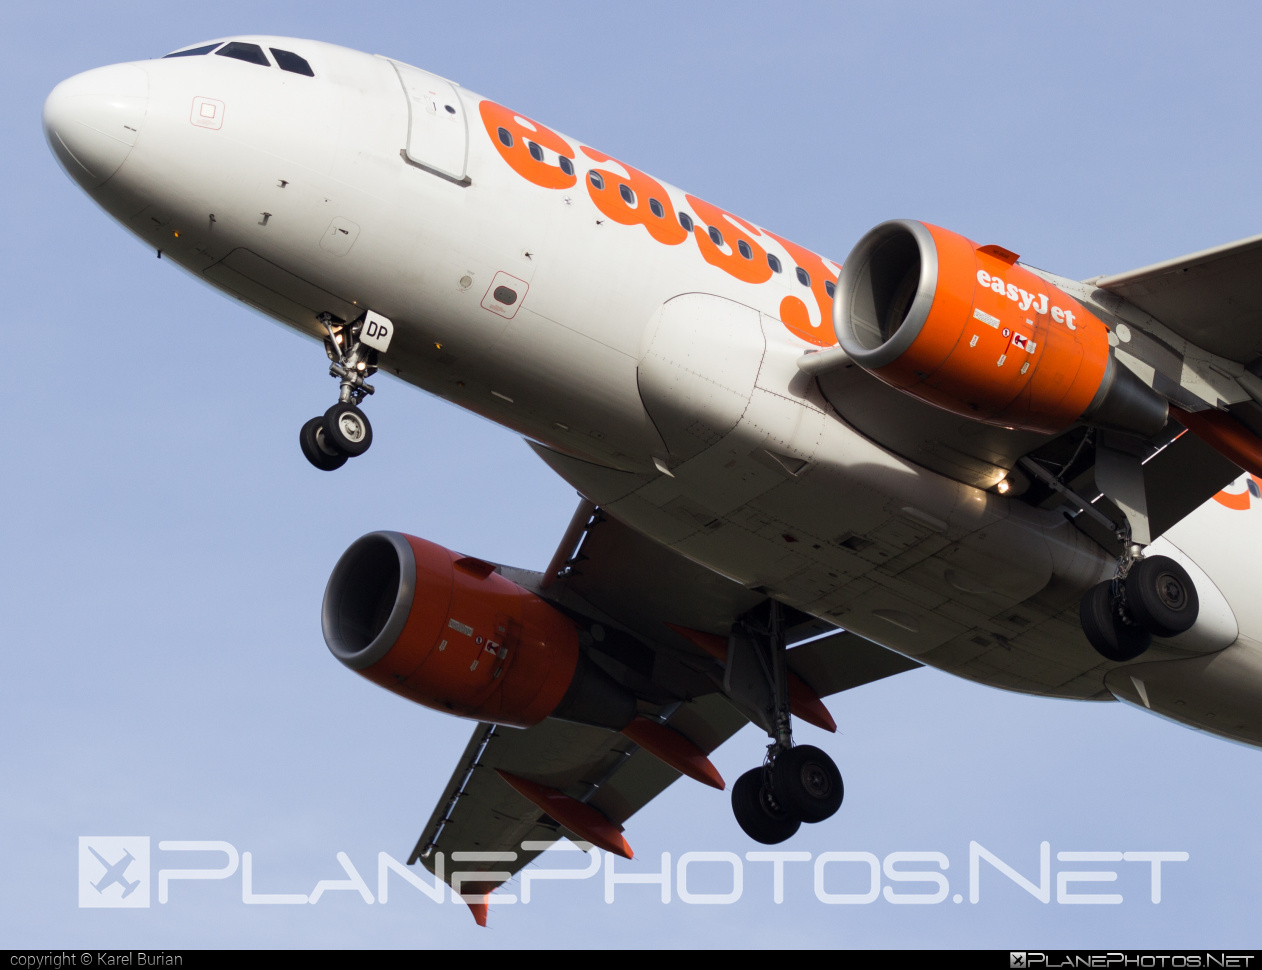 Airbus A319-111 - G-EZDP operated by easyJet #a319 #a320family #airbus #airbus319 #easyjet